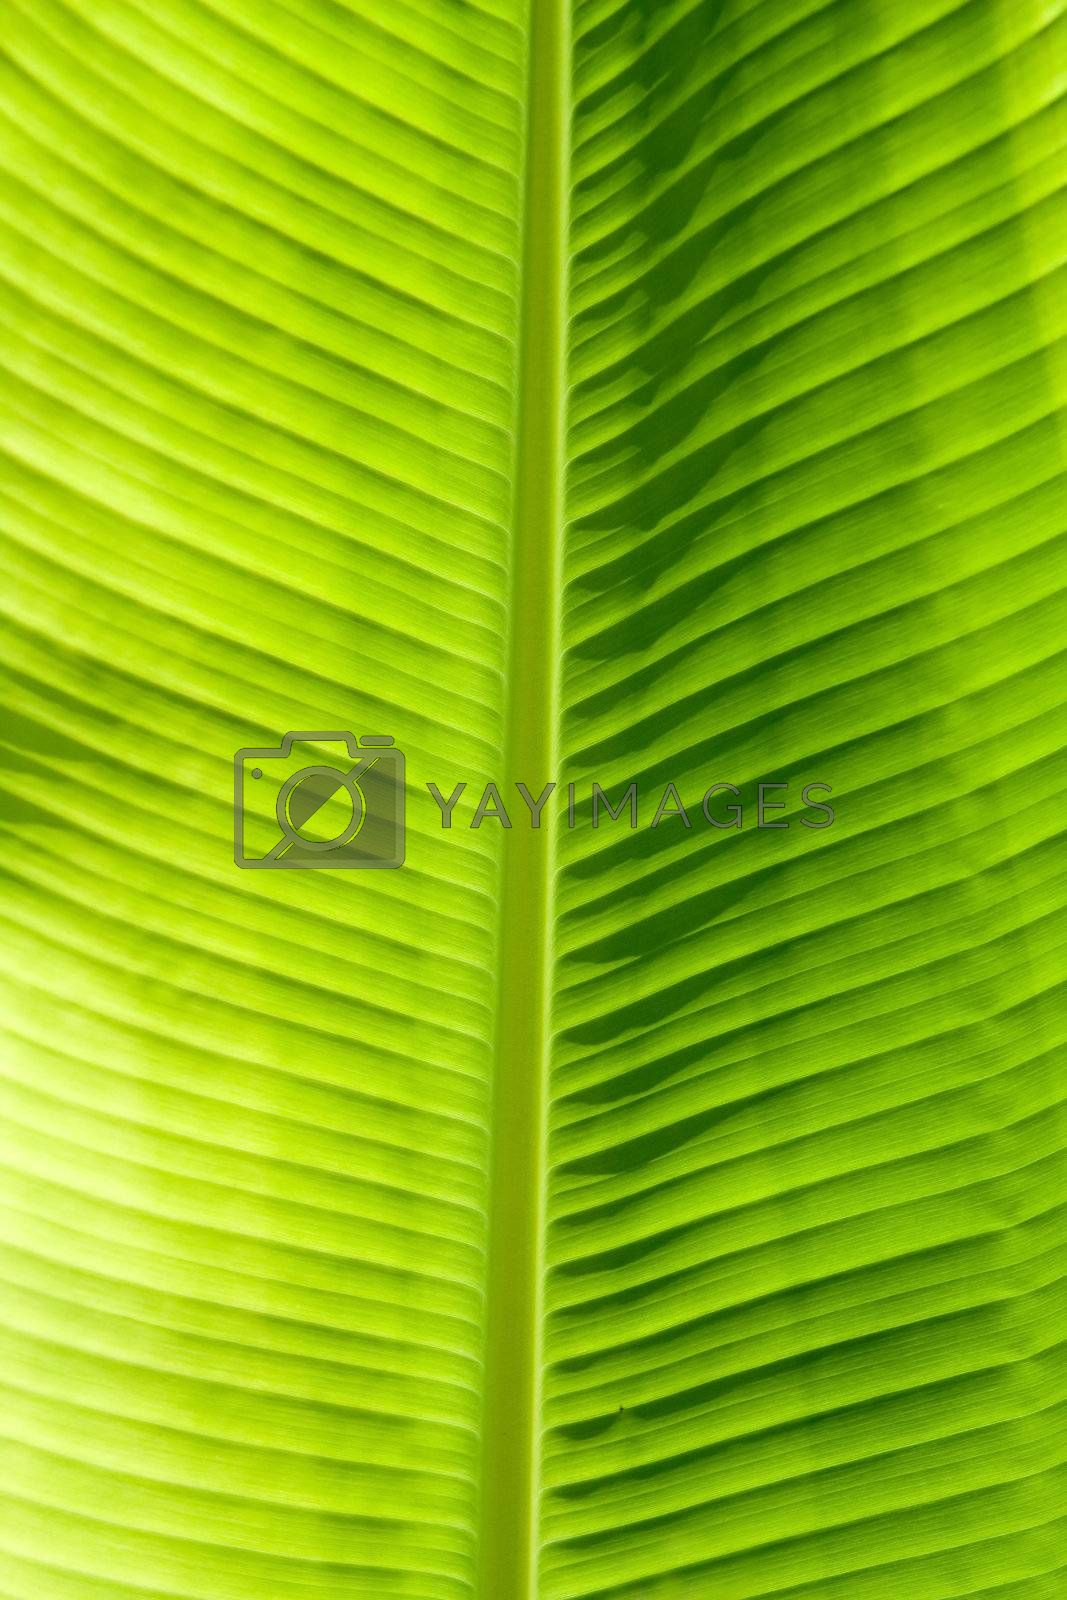 Green leaf texture showing all nerves; Chloroplast with chlorophyll giving color to leaf and used for photosynthesis.